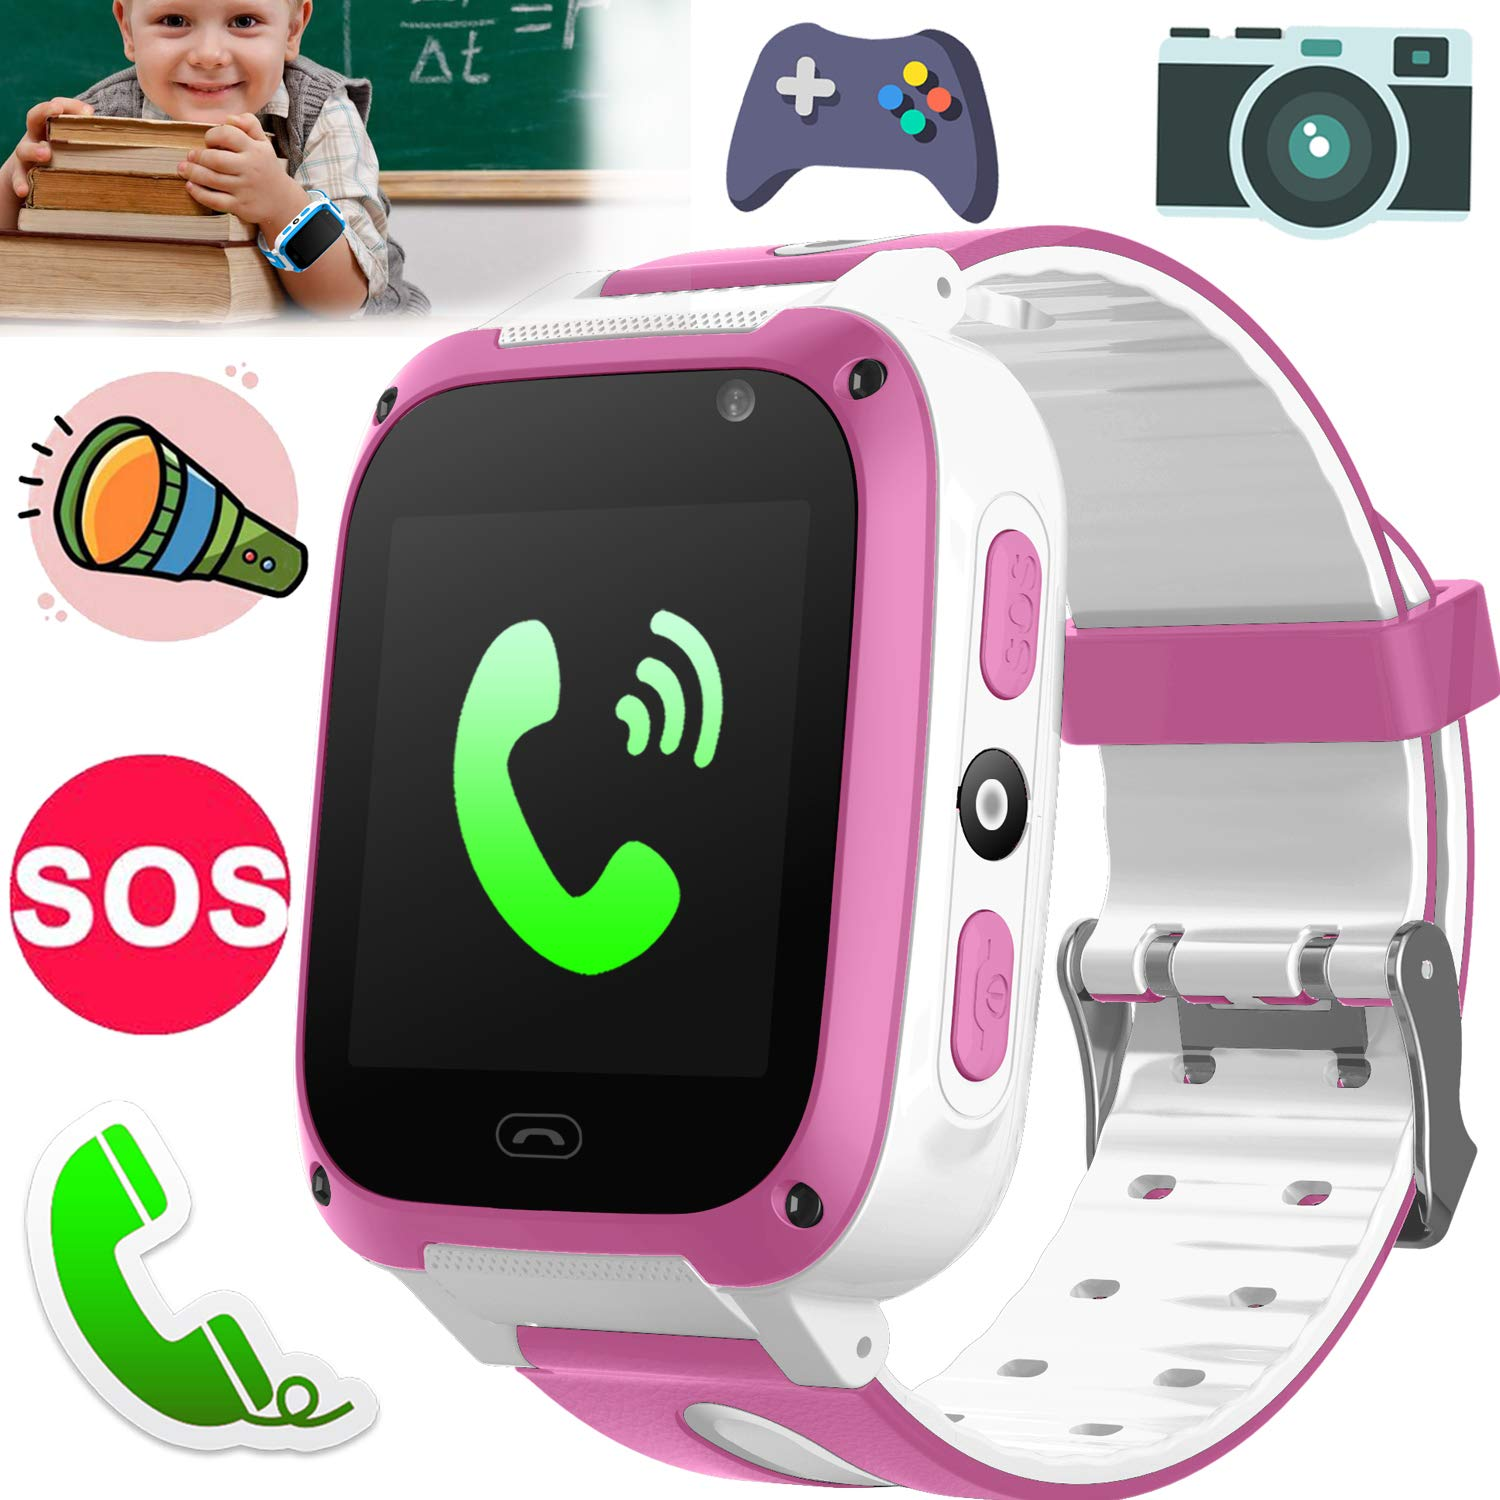 Kids Smart Watch Phone Game Smartwatches for Boys Girls Back to School Digital Wrist Watch Touch Screen One-button SOS Camera Anti-lost Outdoor Travel Cellphone Watch Bracelet Electronic Learning Toys